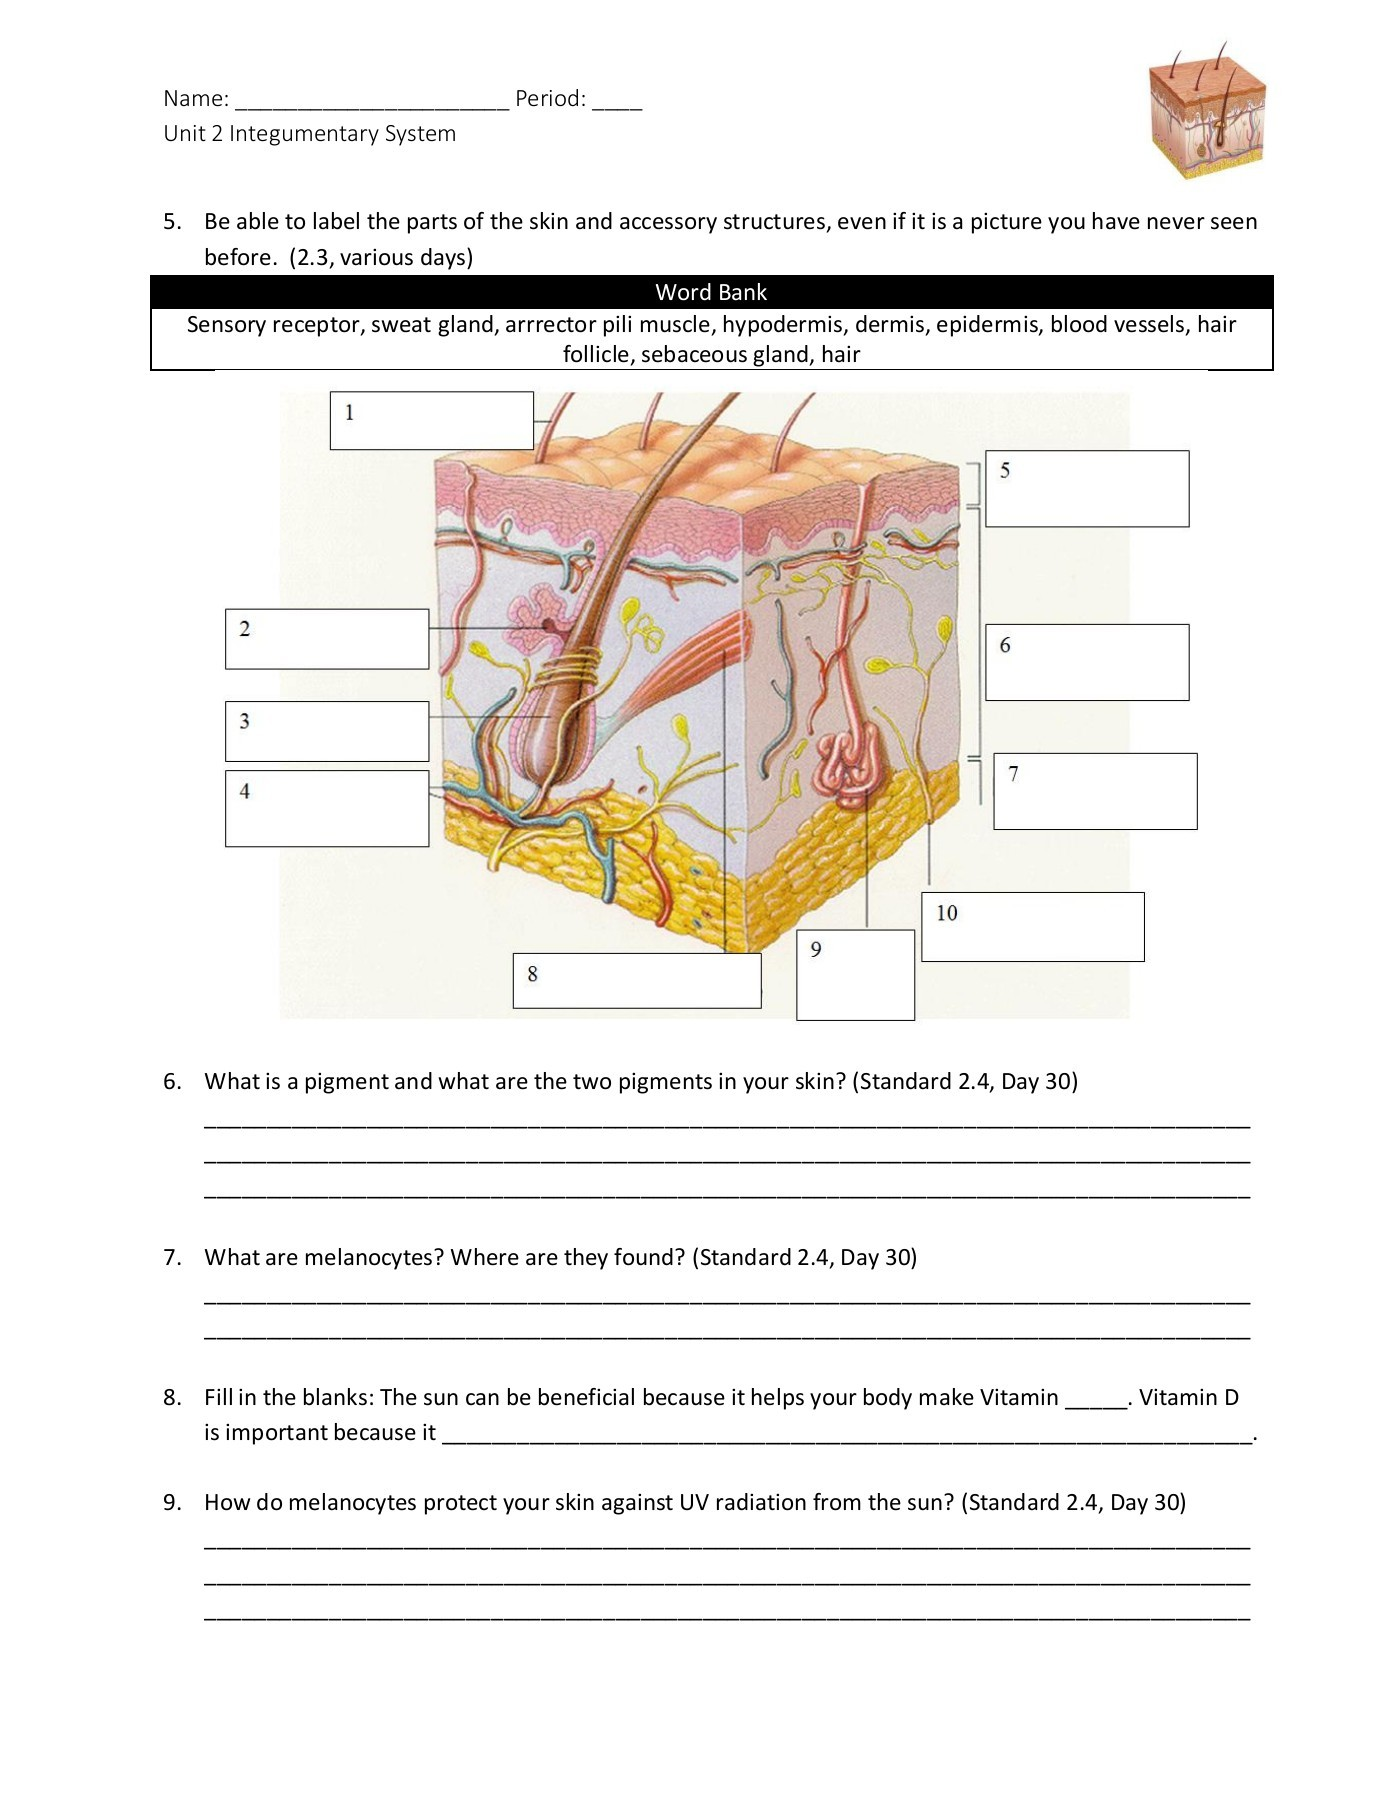 35 Skin Structure Diagram To Label